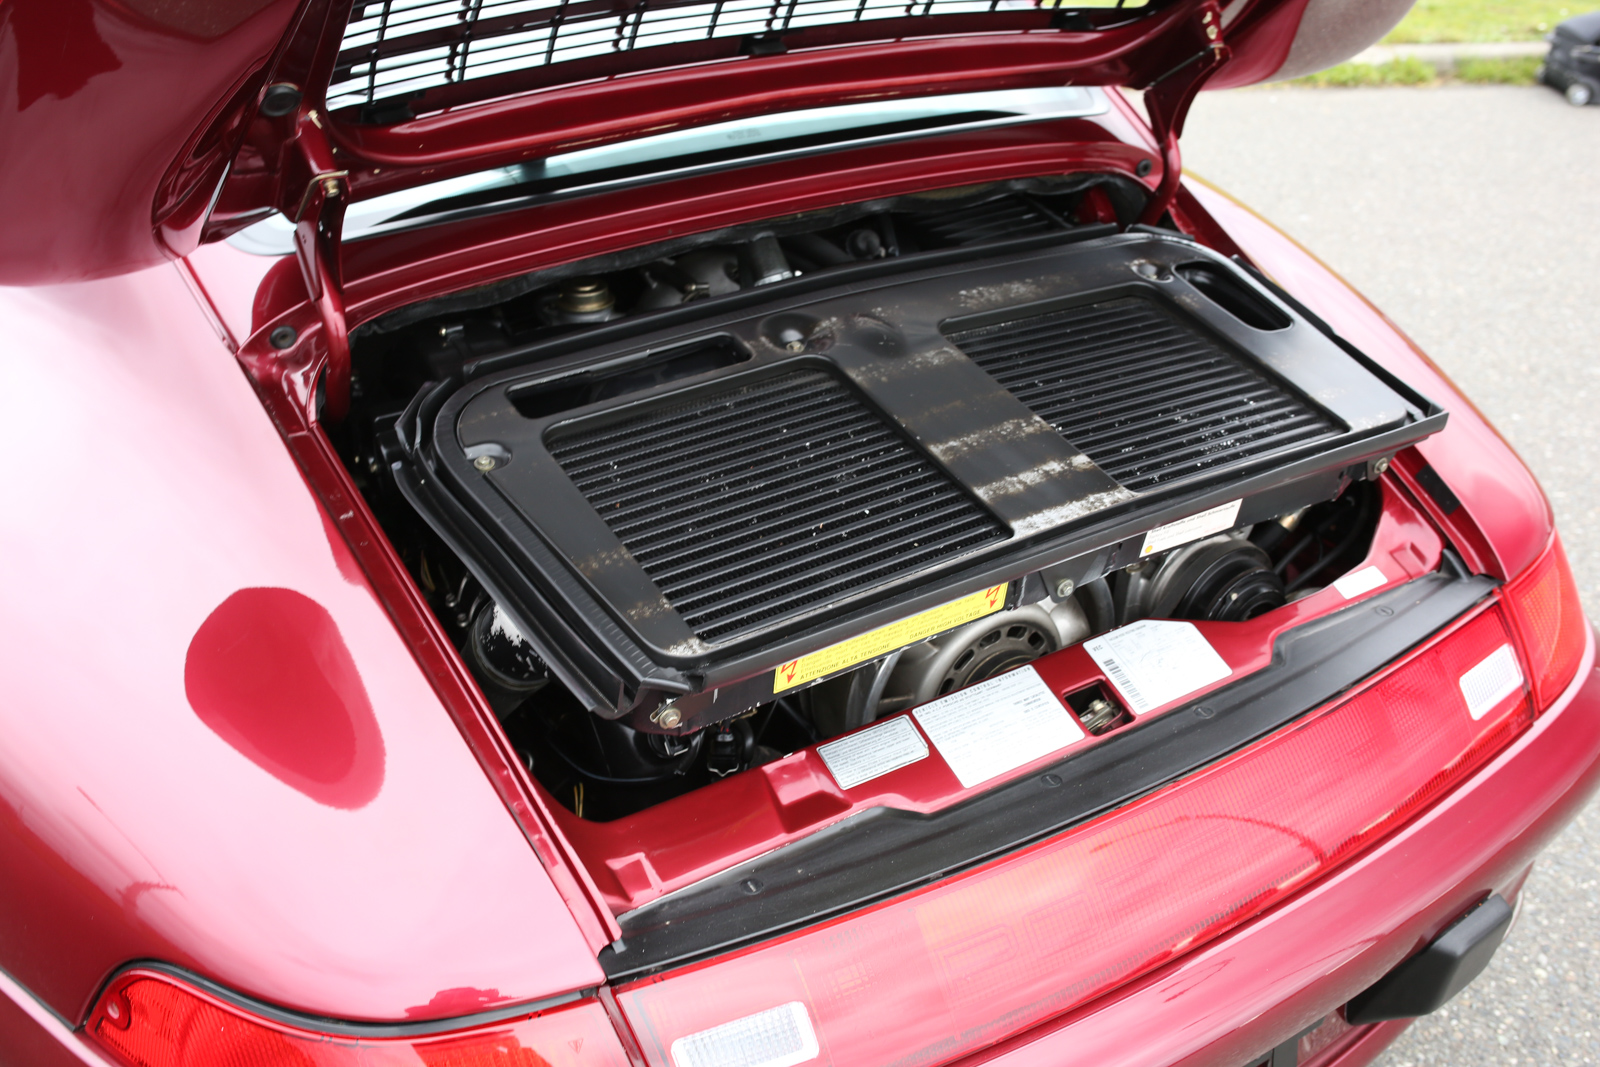 1996 Porsche 911 Turbo (993) for sale